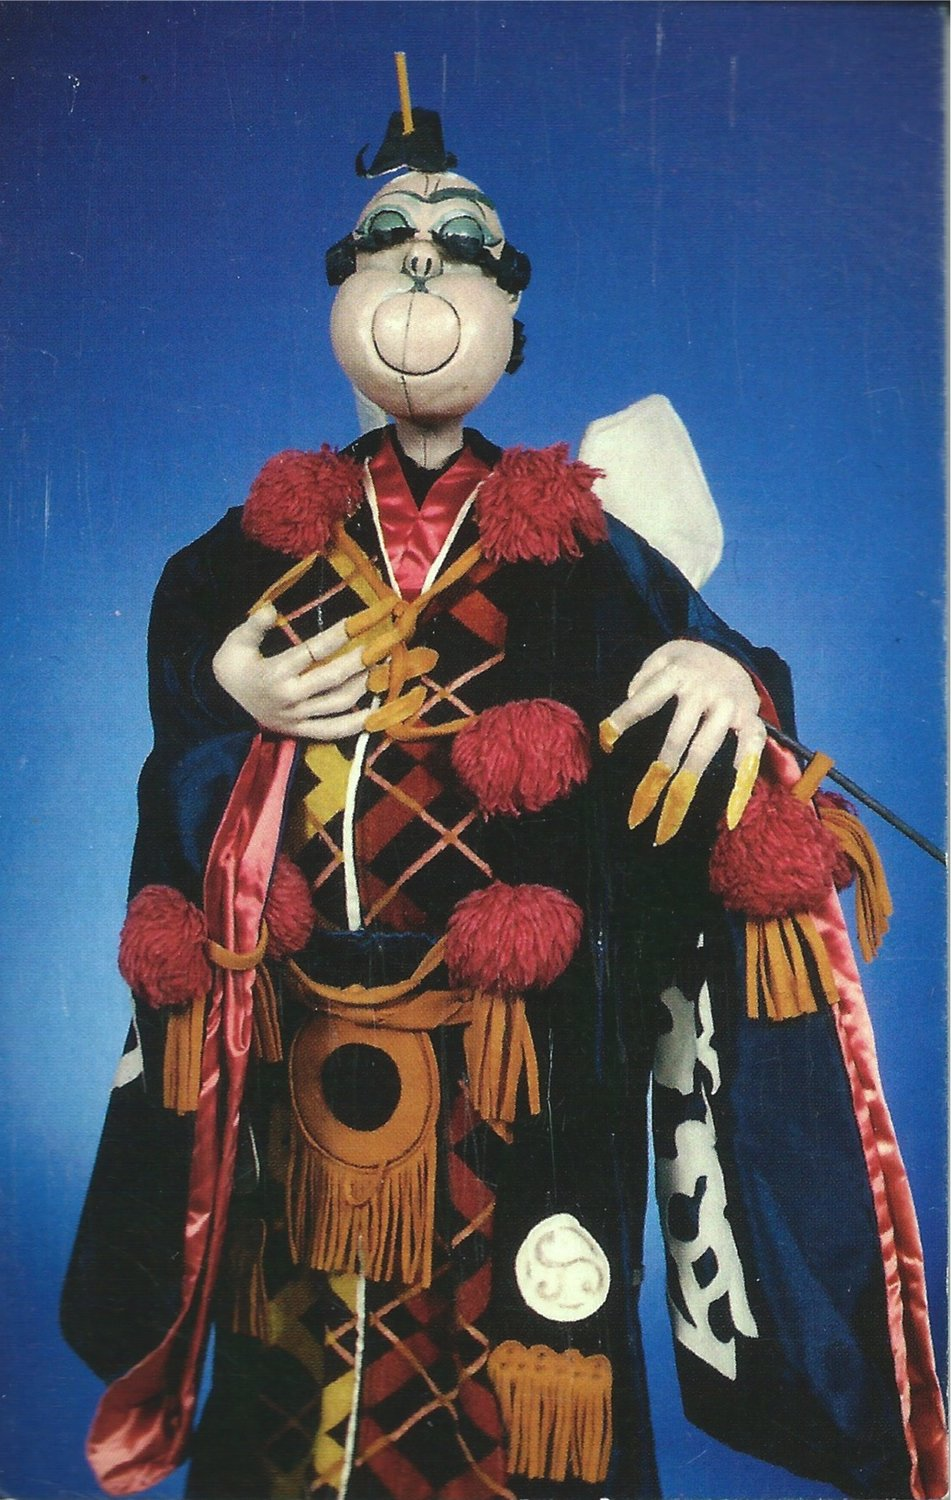 <em>Pooh-Bah</em>, from <em>The Mikado</em> (1968), design and direction: Frank Ballard for production at the University of Connecticut. Rod puppet. Photo courtesy of Ballard Institute and Museum of Puppetry at the University of Connecticut. Photo: Thomas A. Hoebbel